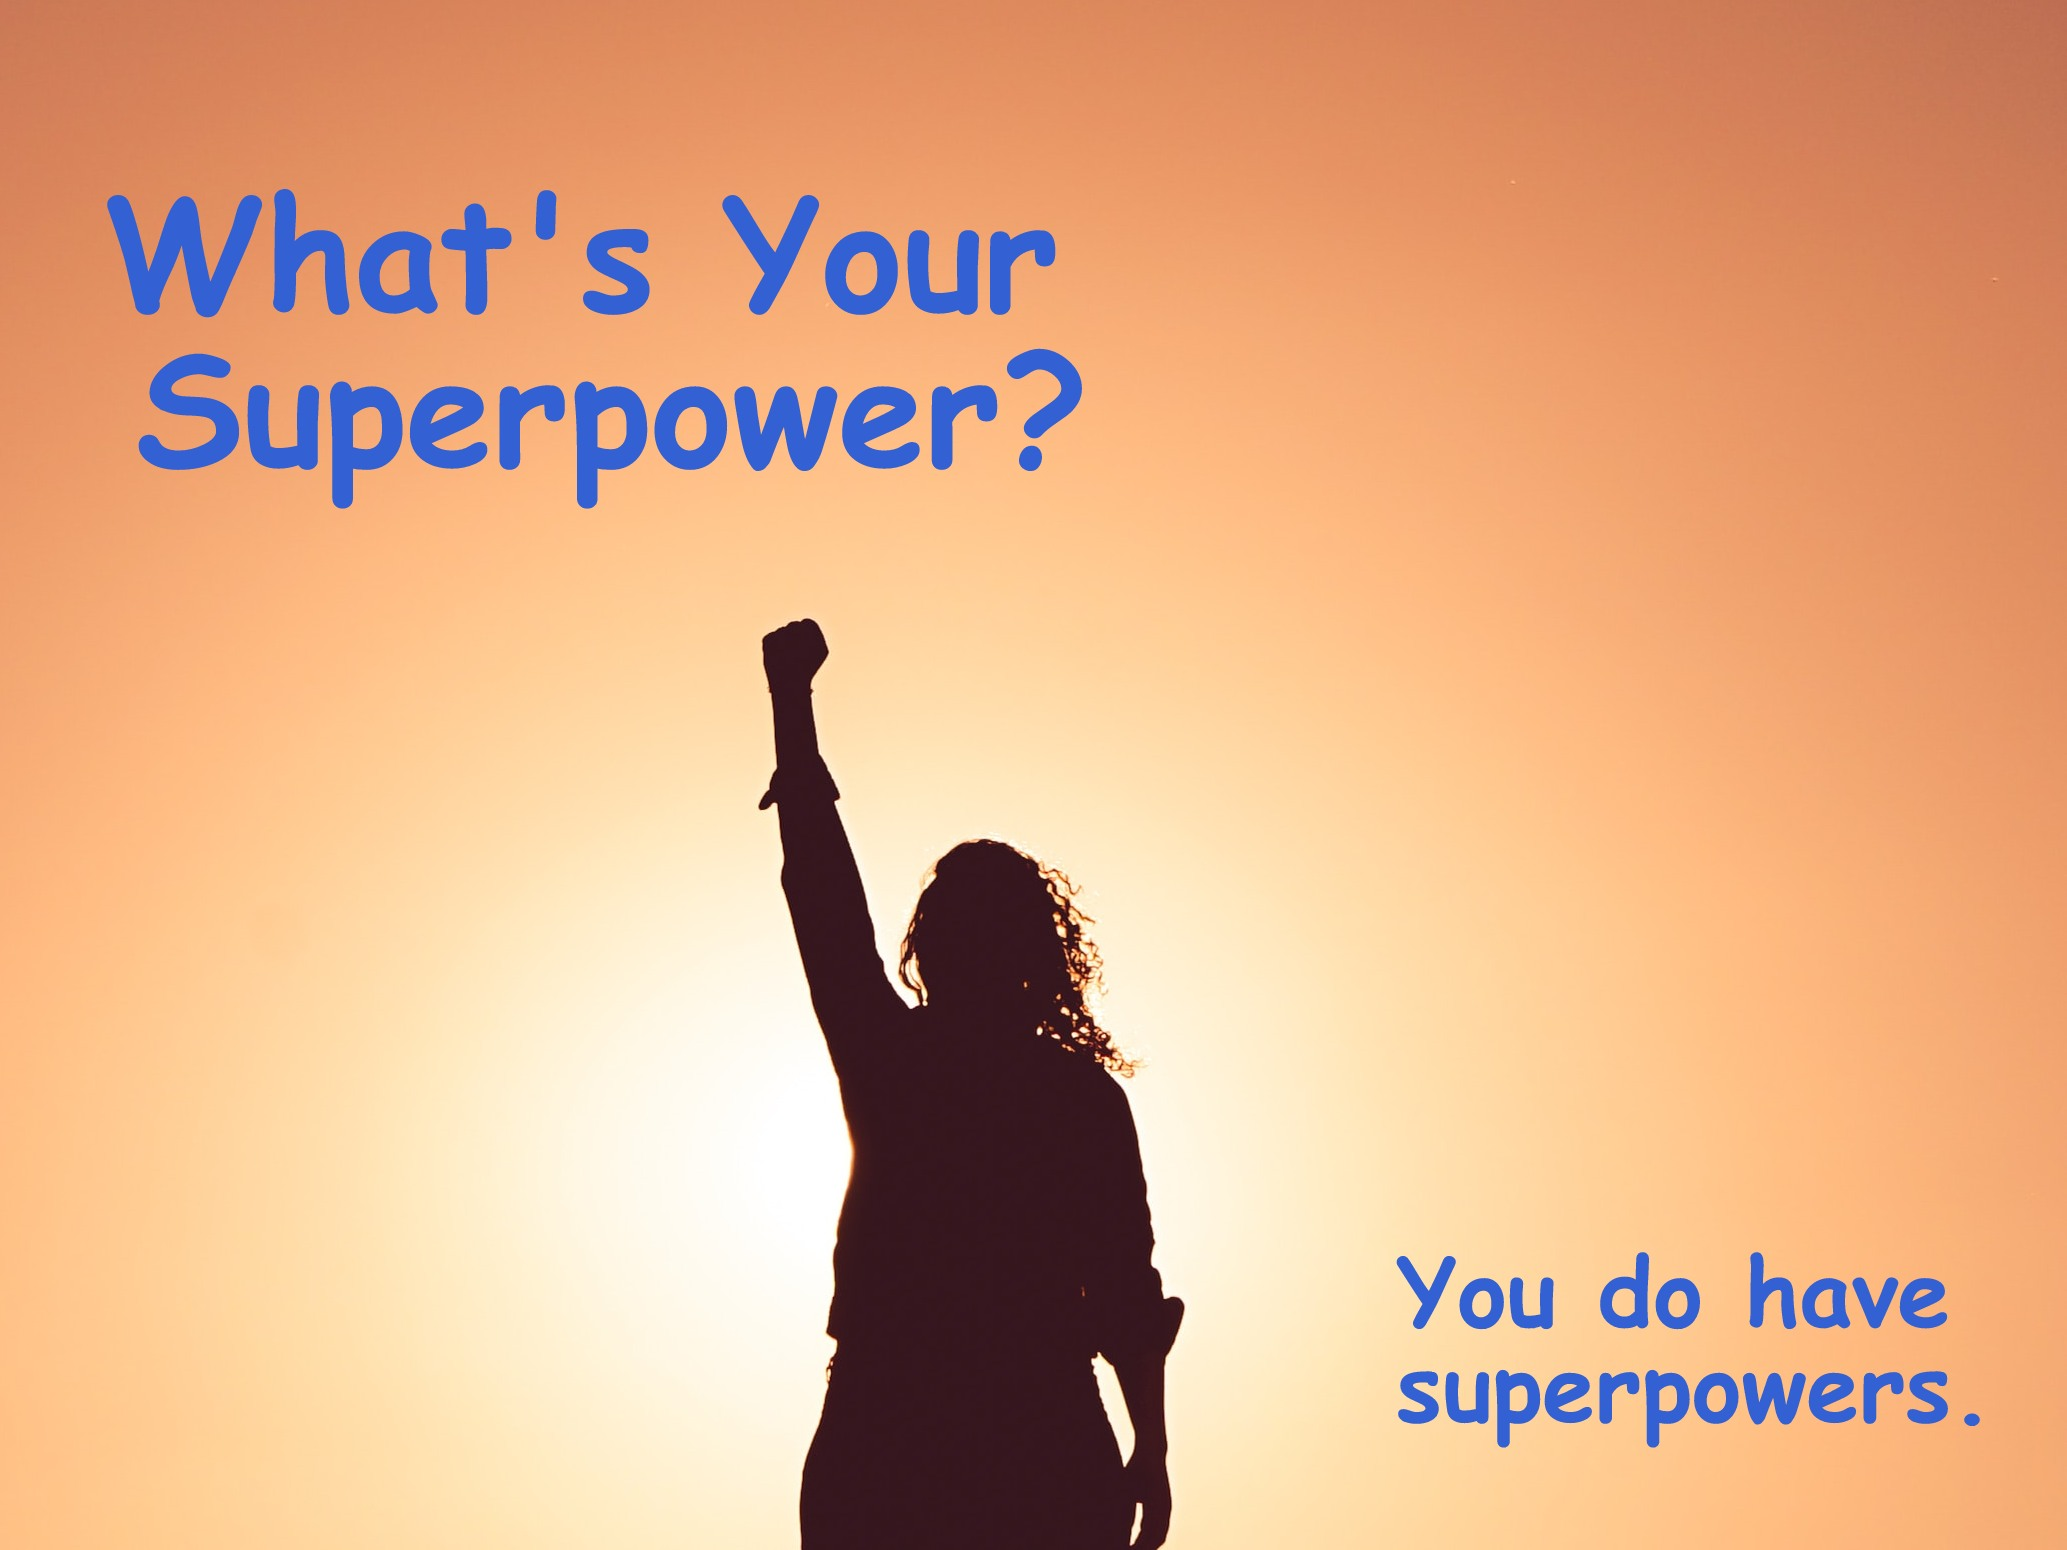 Image - You have superpowers.